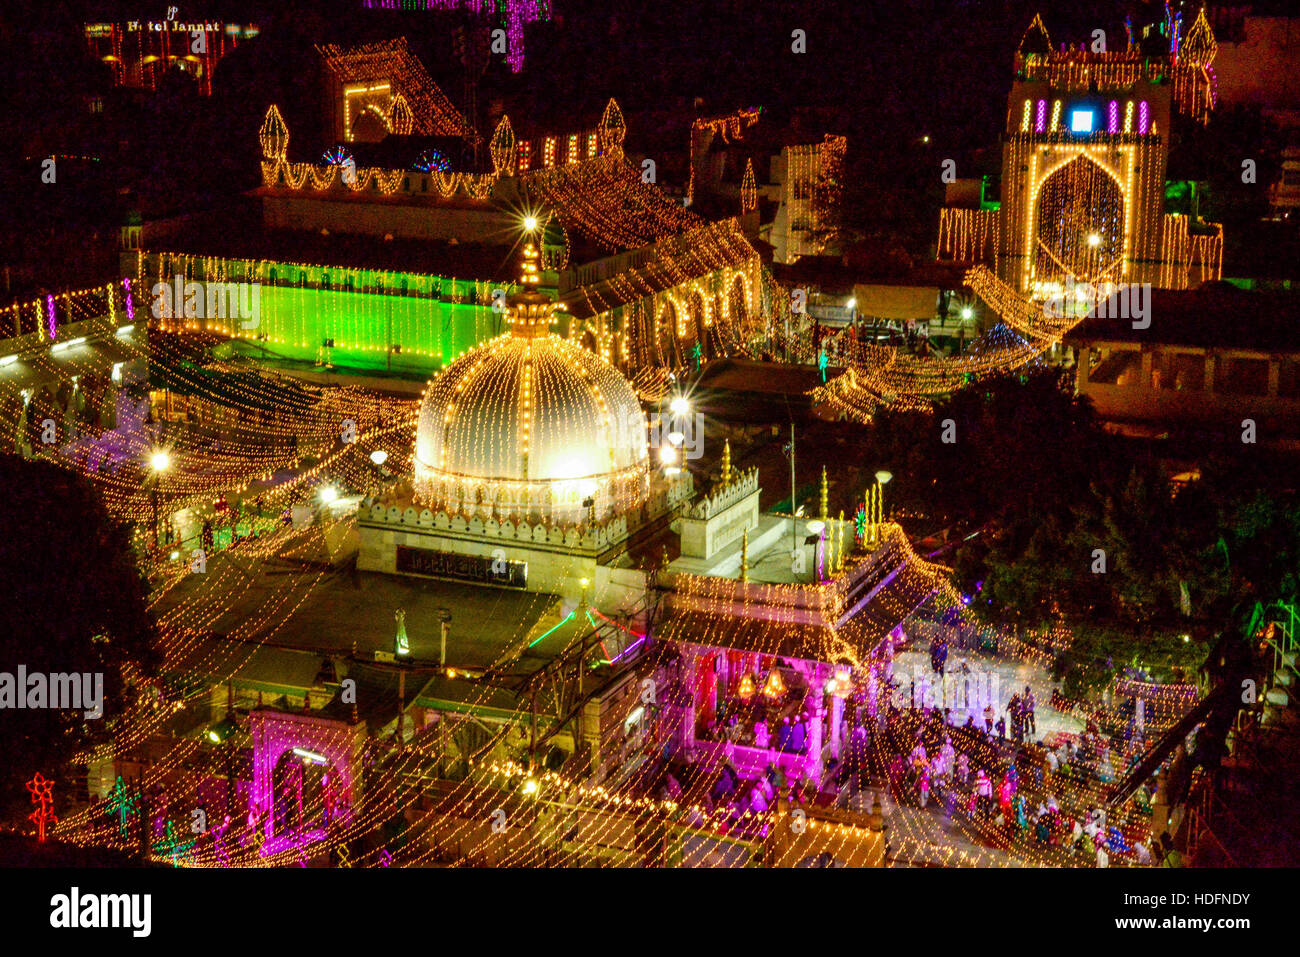 Ajmer india 11th dec 2016 a view of illuminated dargah khawaja ajmer india 11th dec 2016 a view of illuminated dargah khawaja moinuddin chishti during eid milad un nabi which commemorates the prophet muhammads or altavistaventures Images